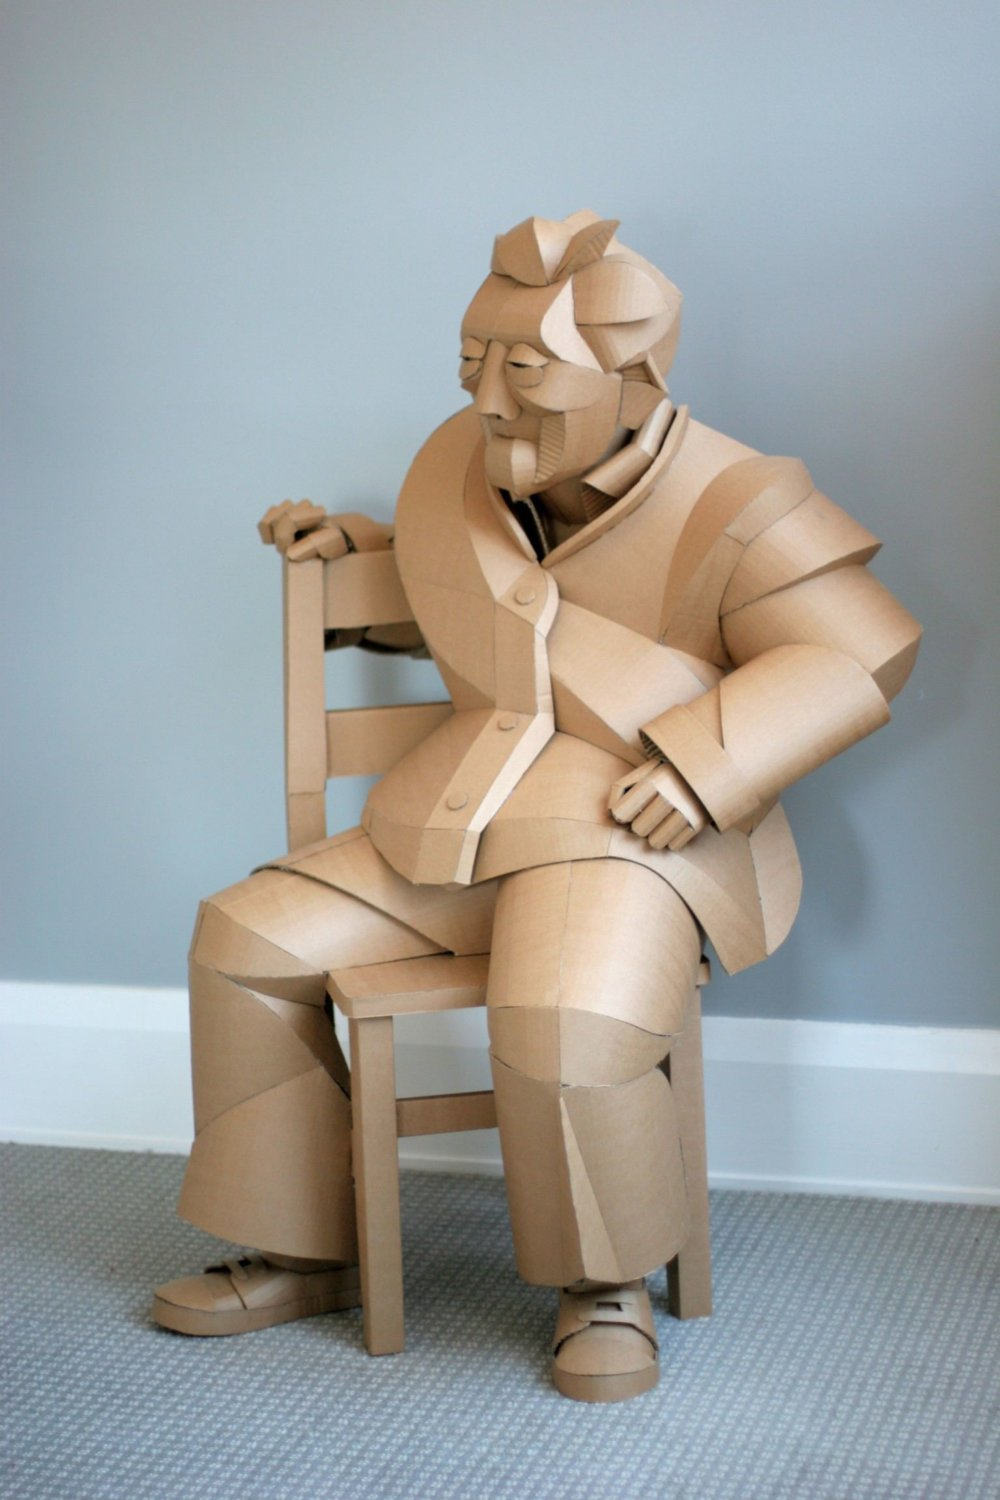 Magnificent Figurative Sculptures Made Entirely Out Of Cardboard By Warren King 4